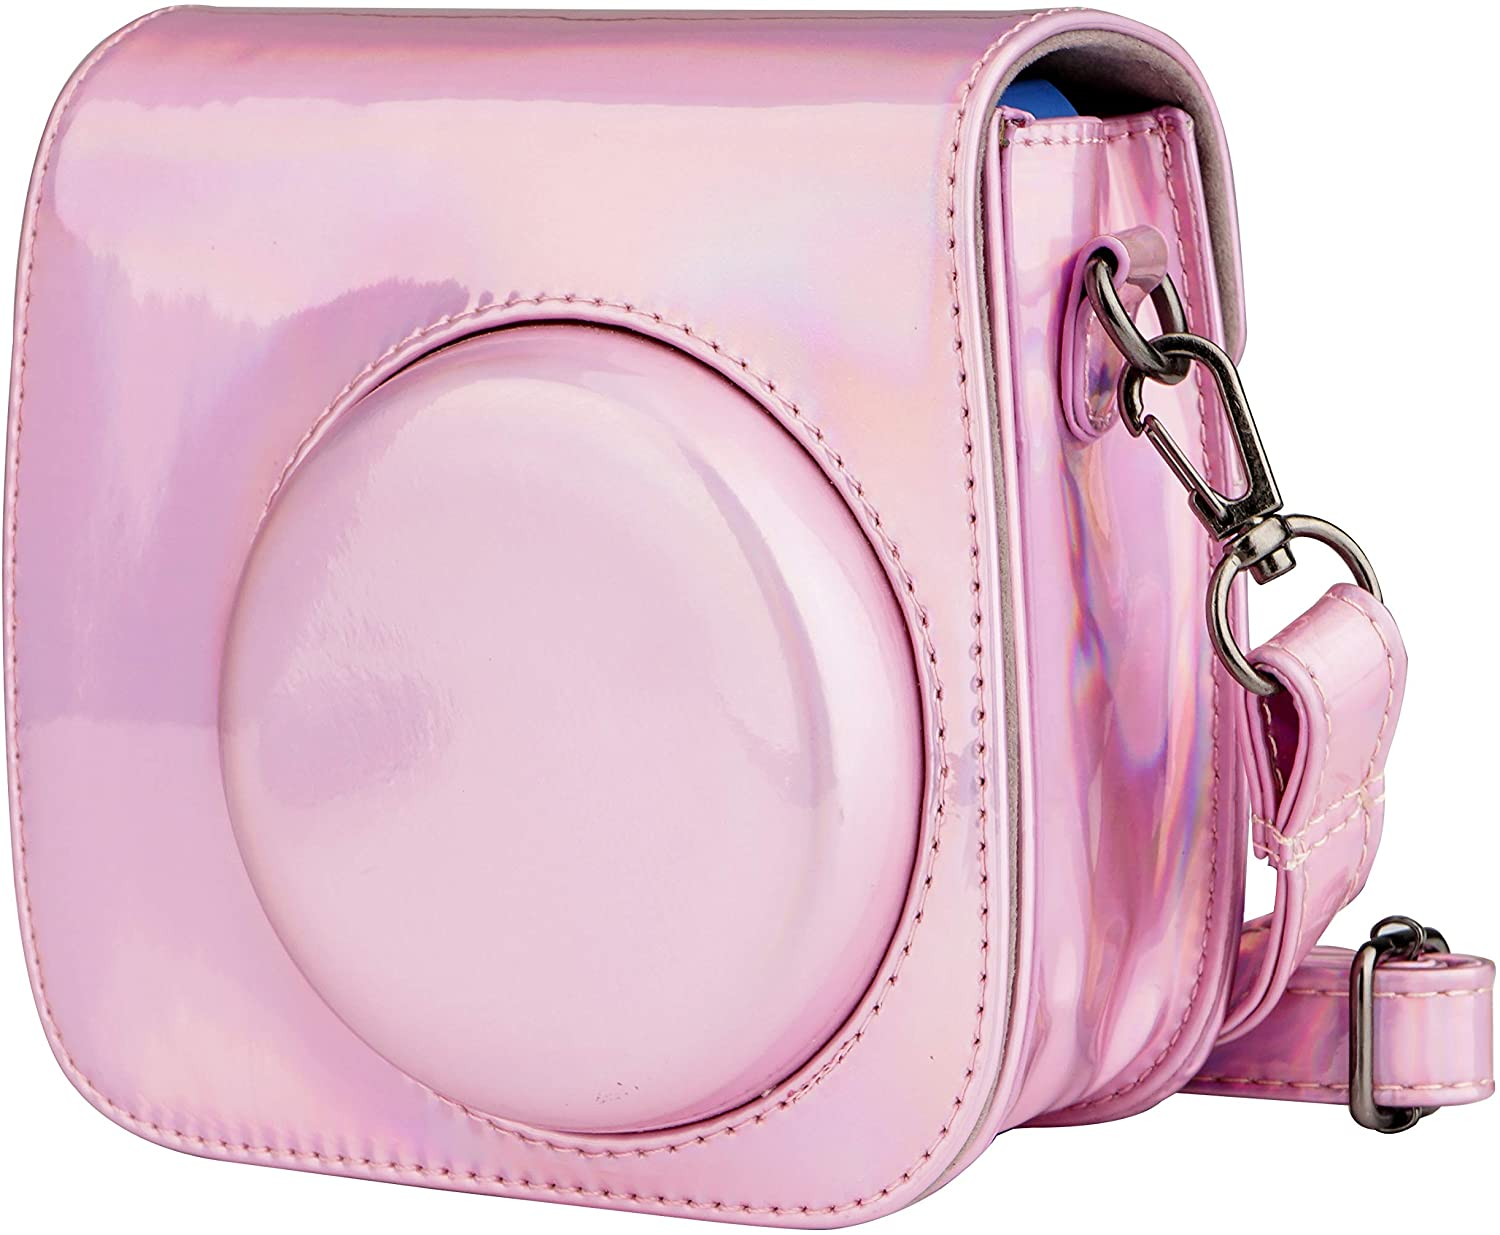 Blummy PU Leather Camera Case Compatible with Fujifilm Instax Mini 11/ Mini 9/ Mini 8 Instant Camera with Adjustable Strap and Pocket (Pink Laser)